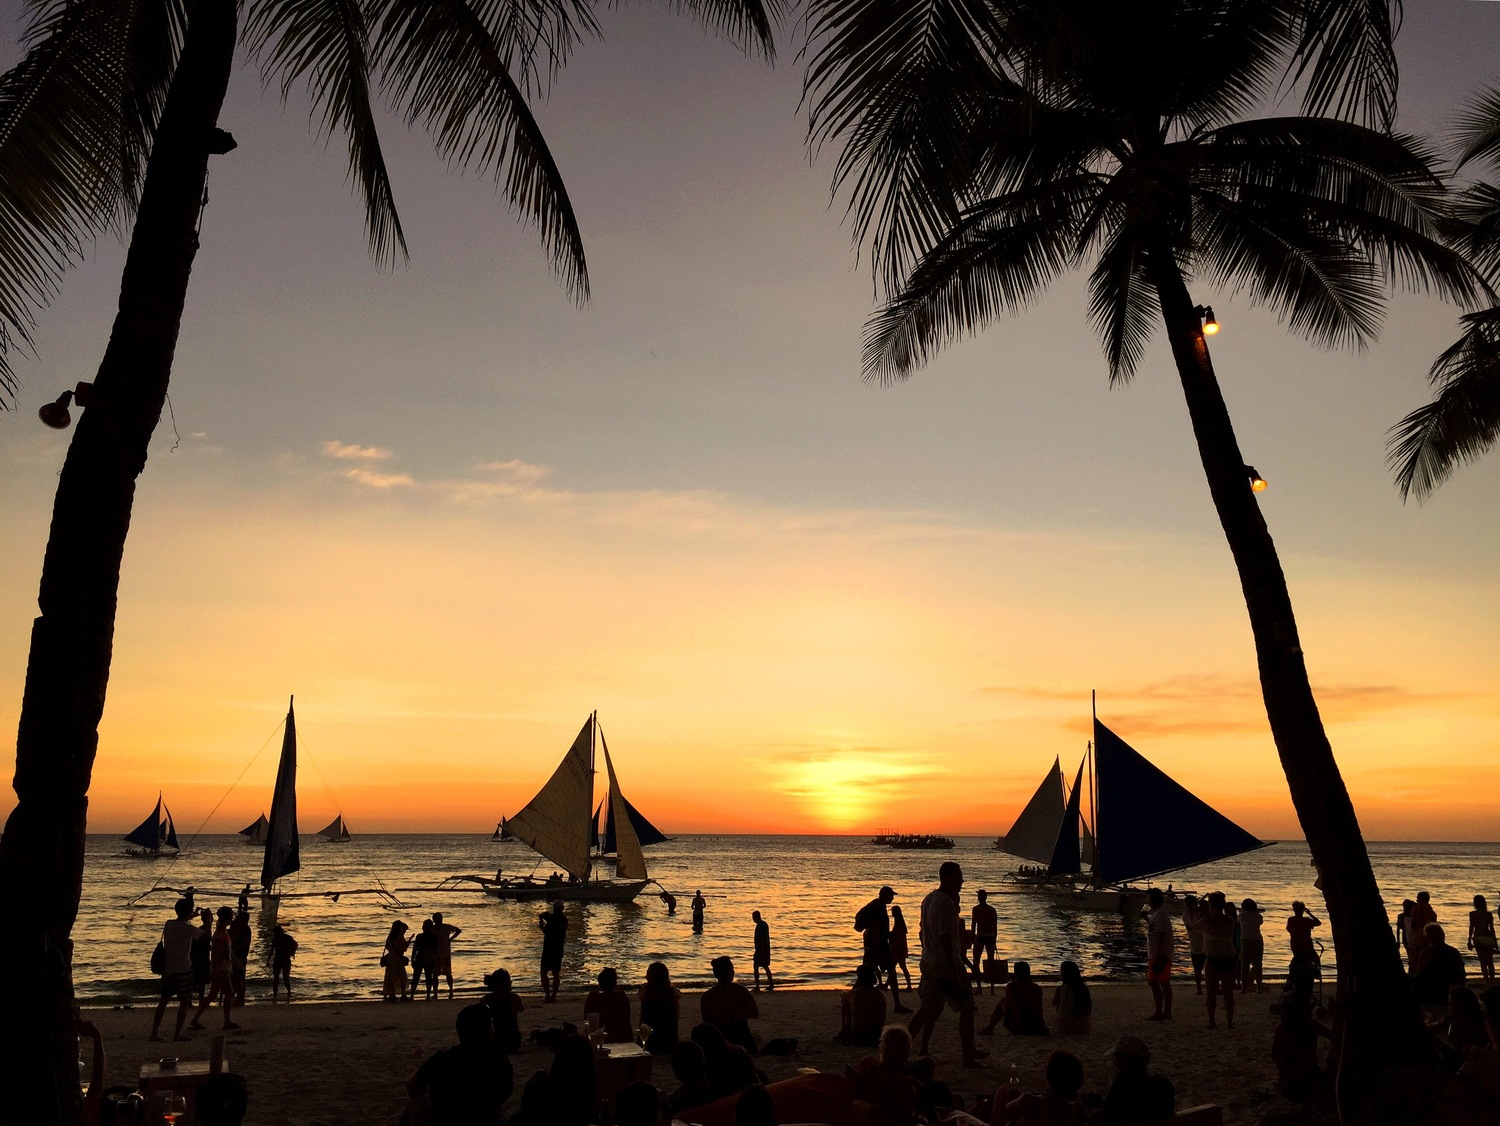 Sunsets in Boracay, Philippines